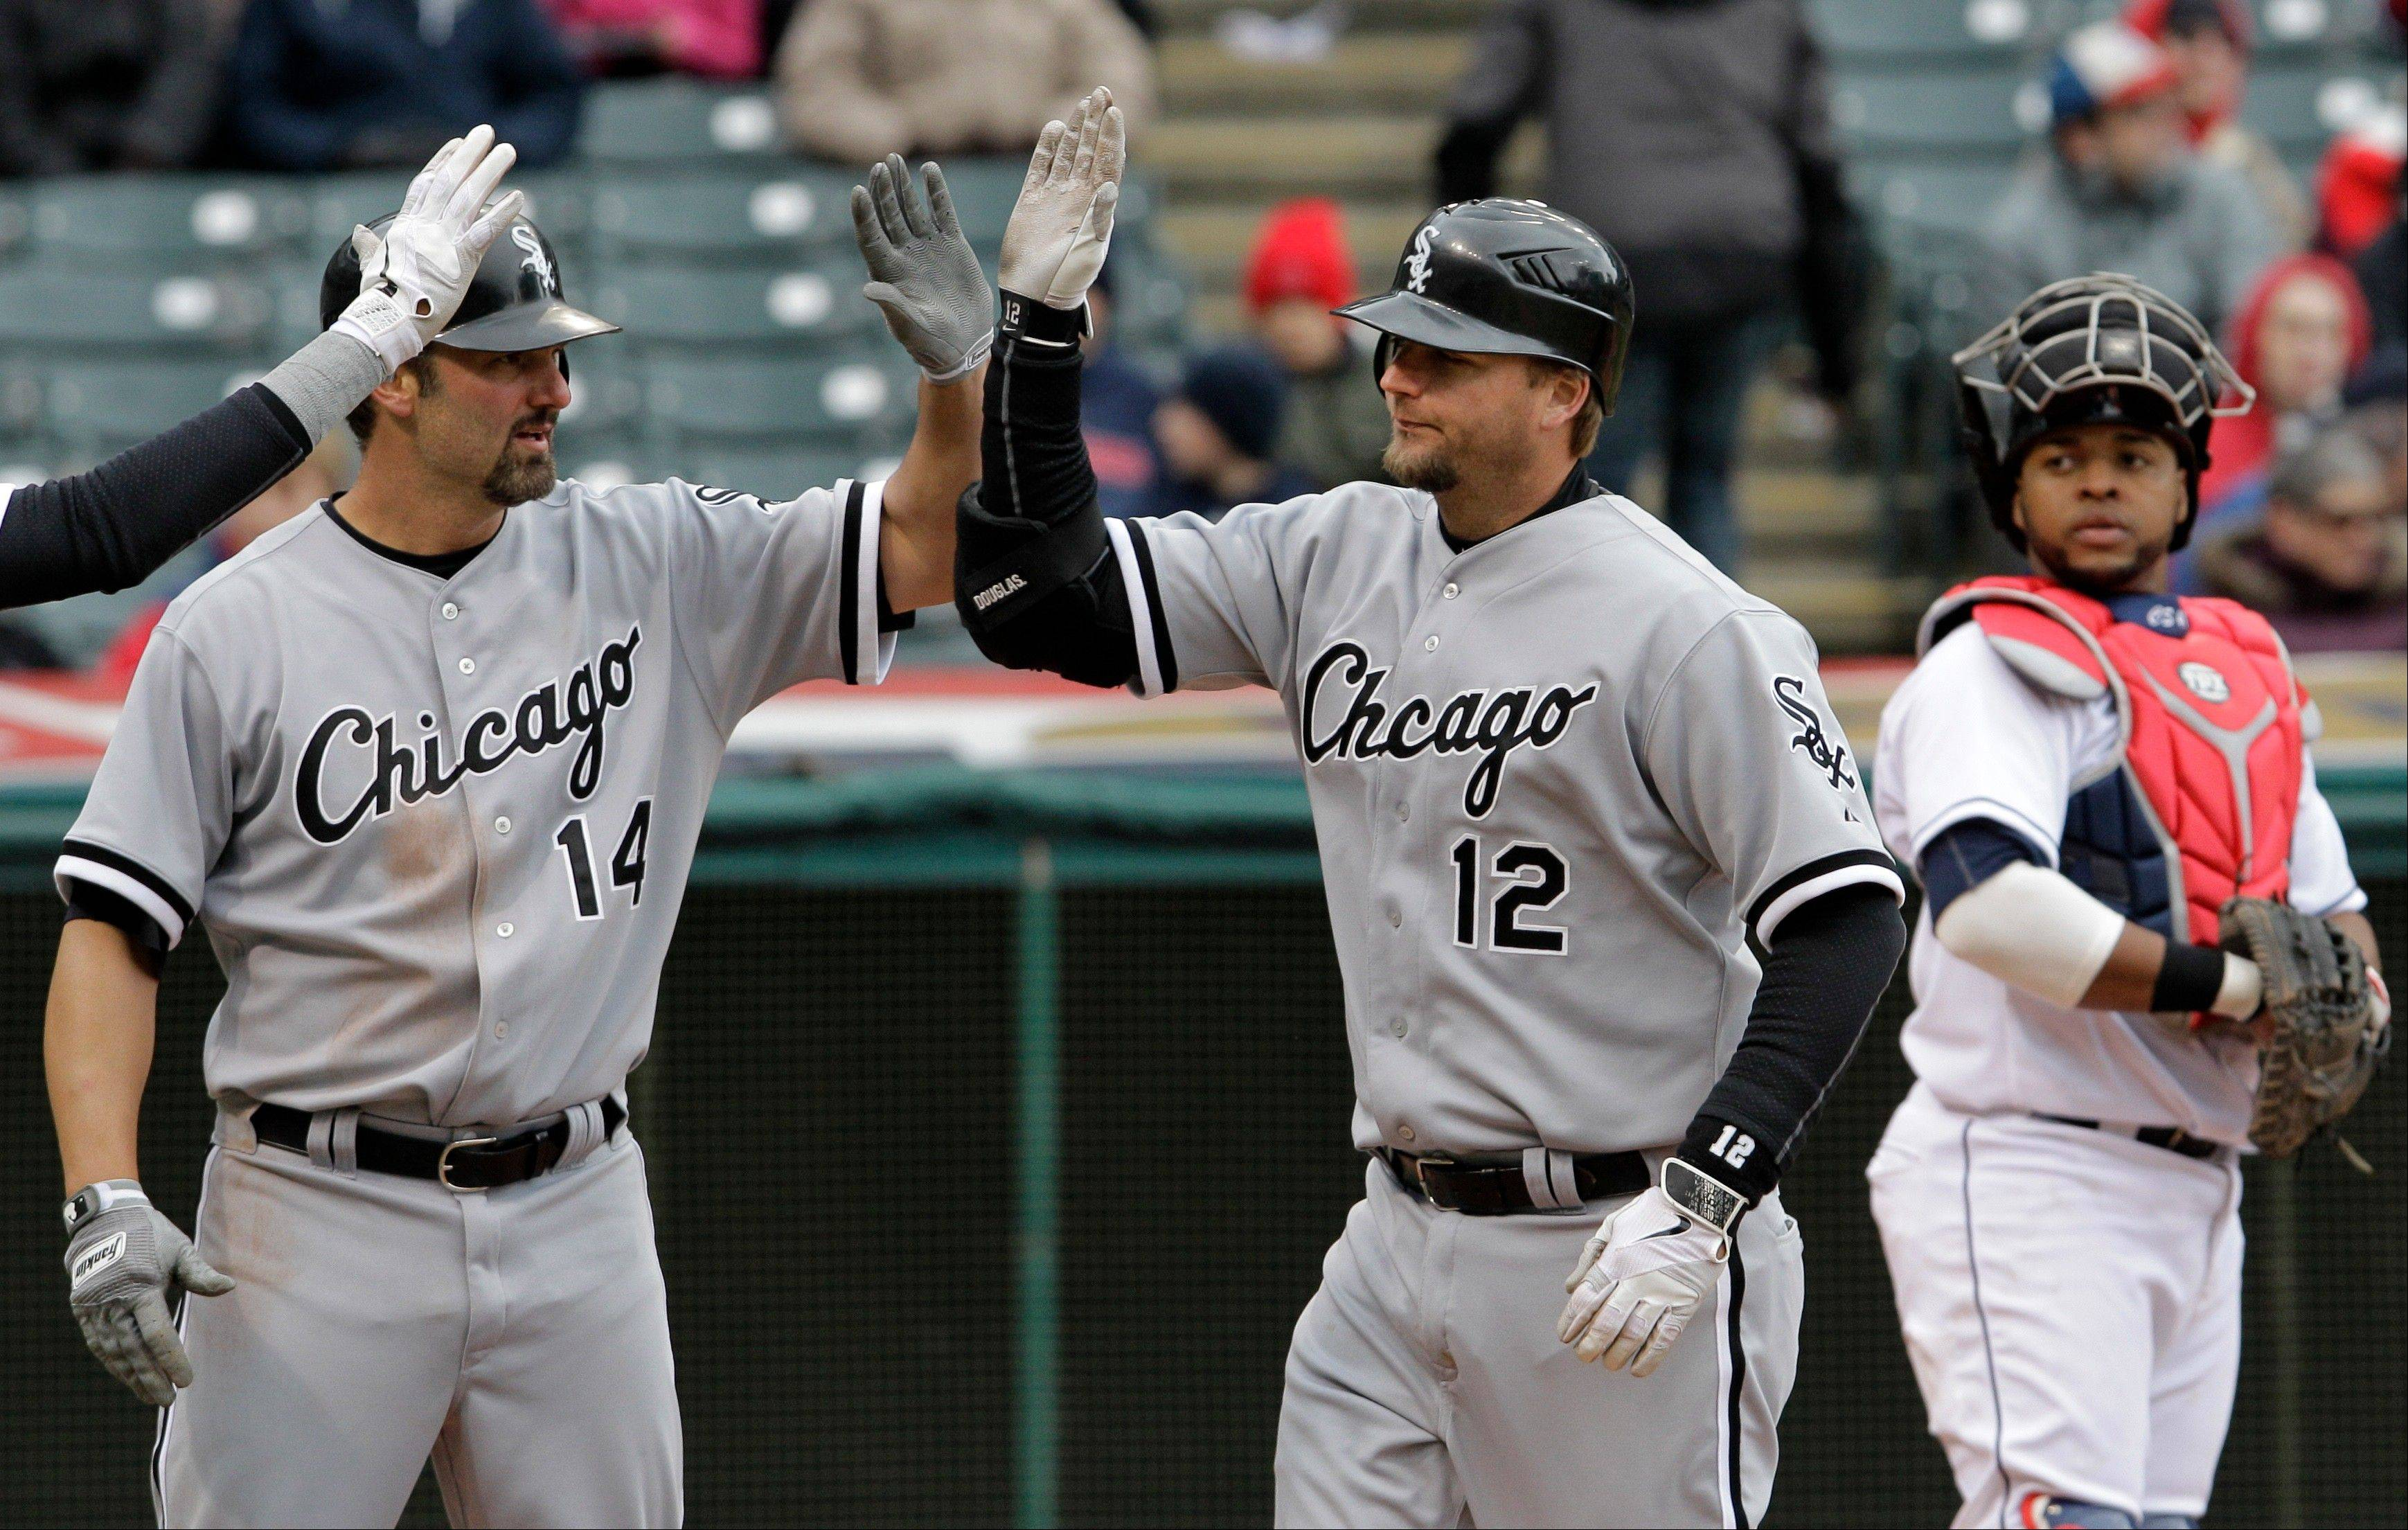 Pierzynski gets 4 RBI as Sox beat Indians 10-6